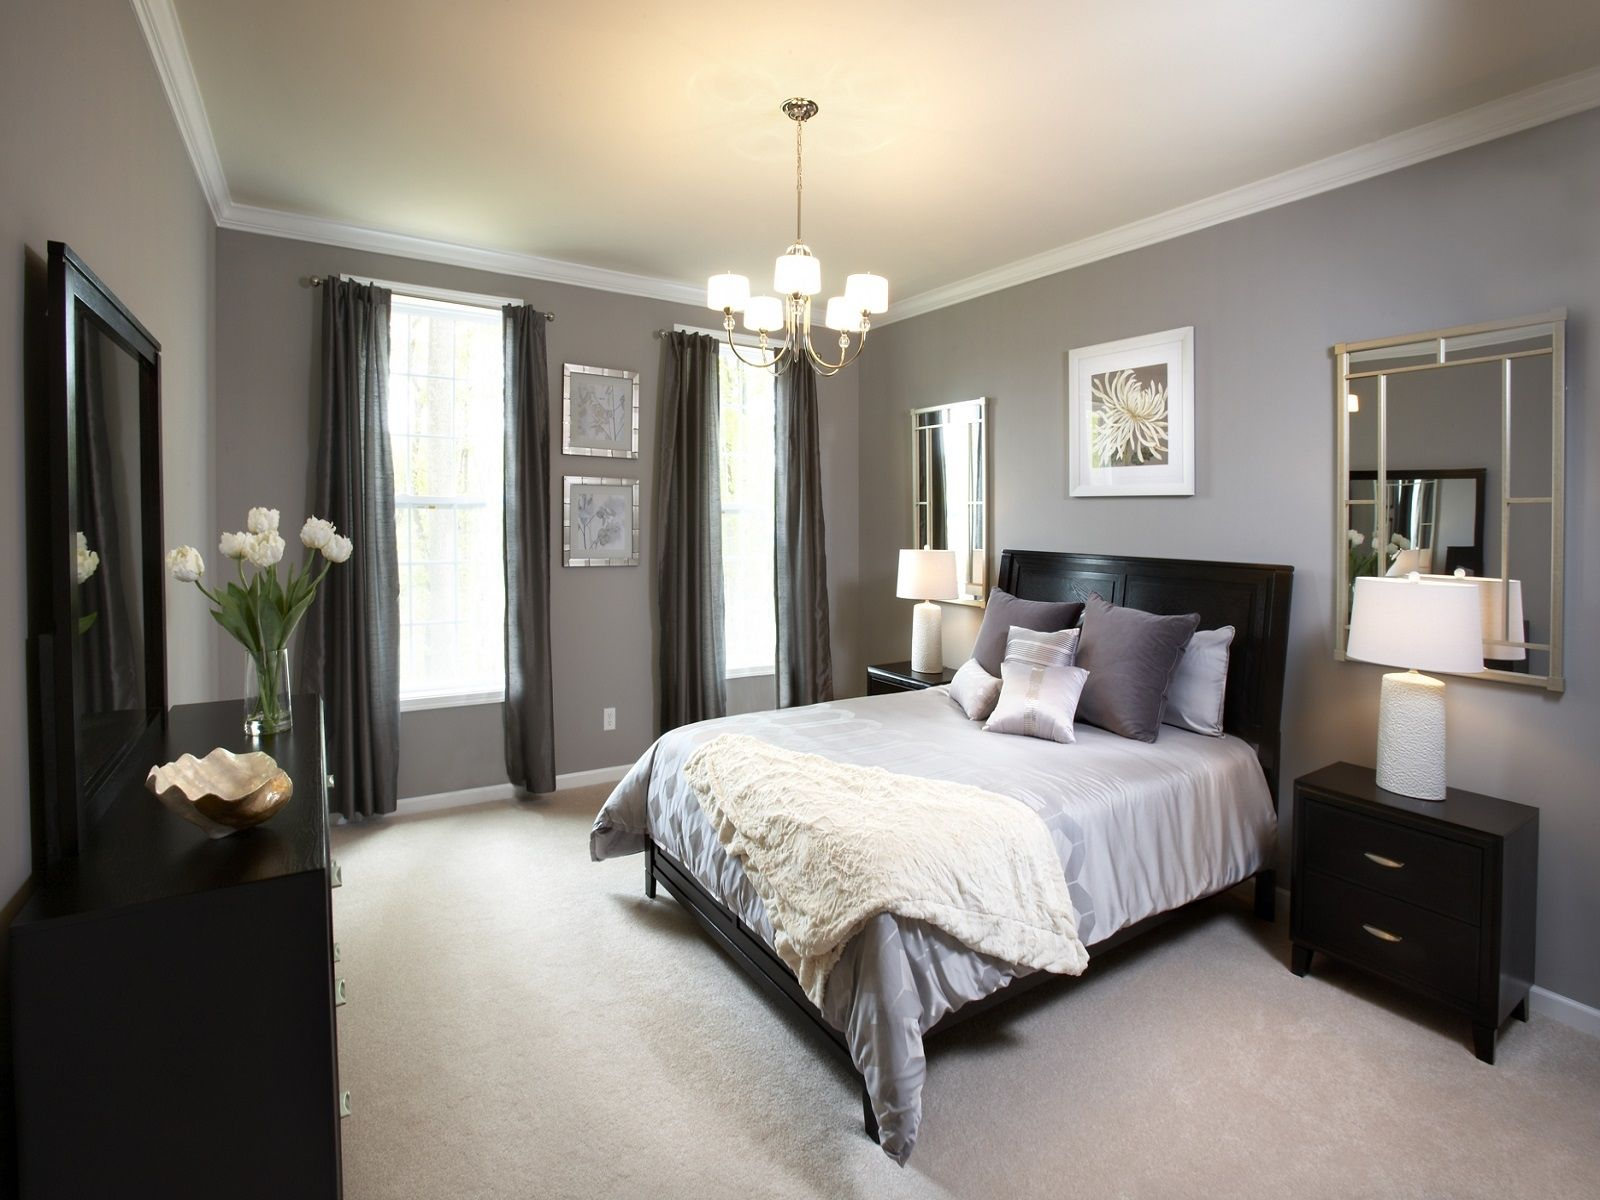 Design Bedroom Design Ideas best 25 adult bedroom ideas on pinterest grey bedrooms brilliant decorating with black bed and dark dresser near painted wall